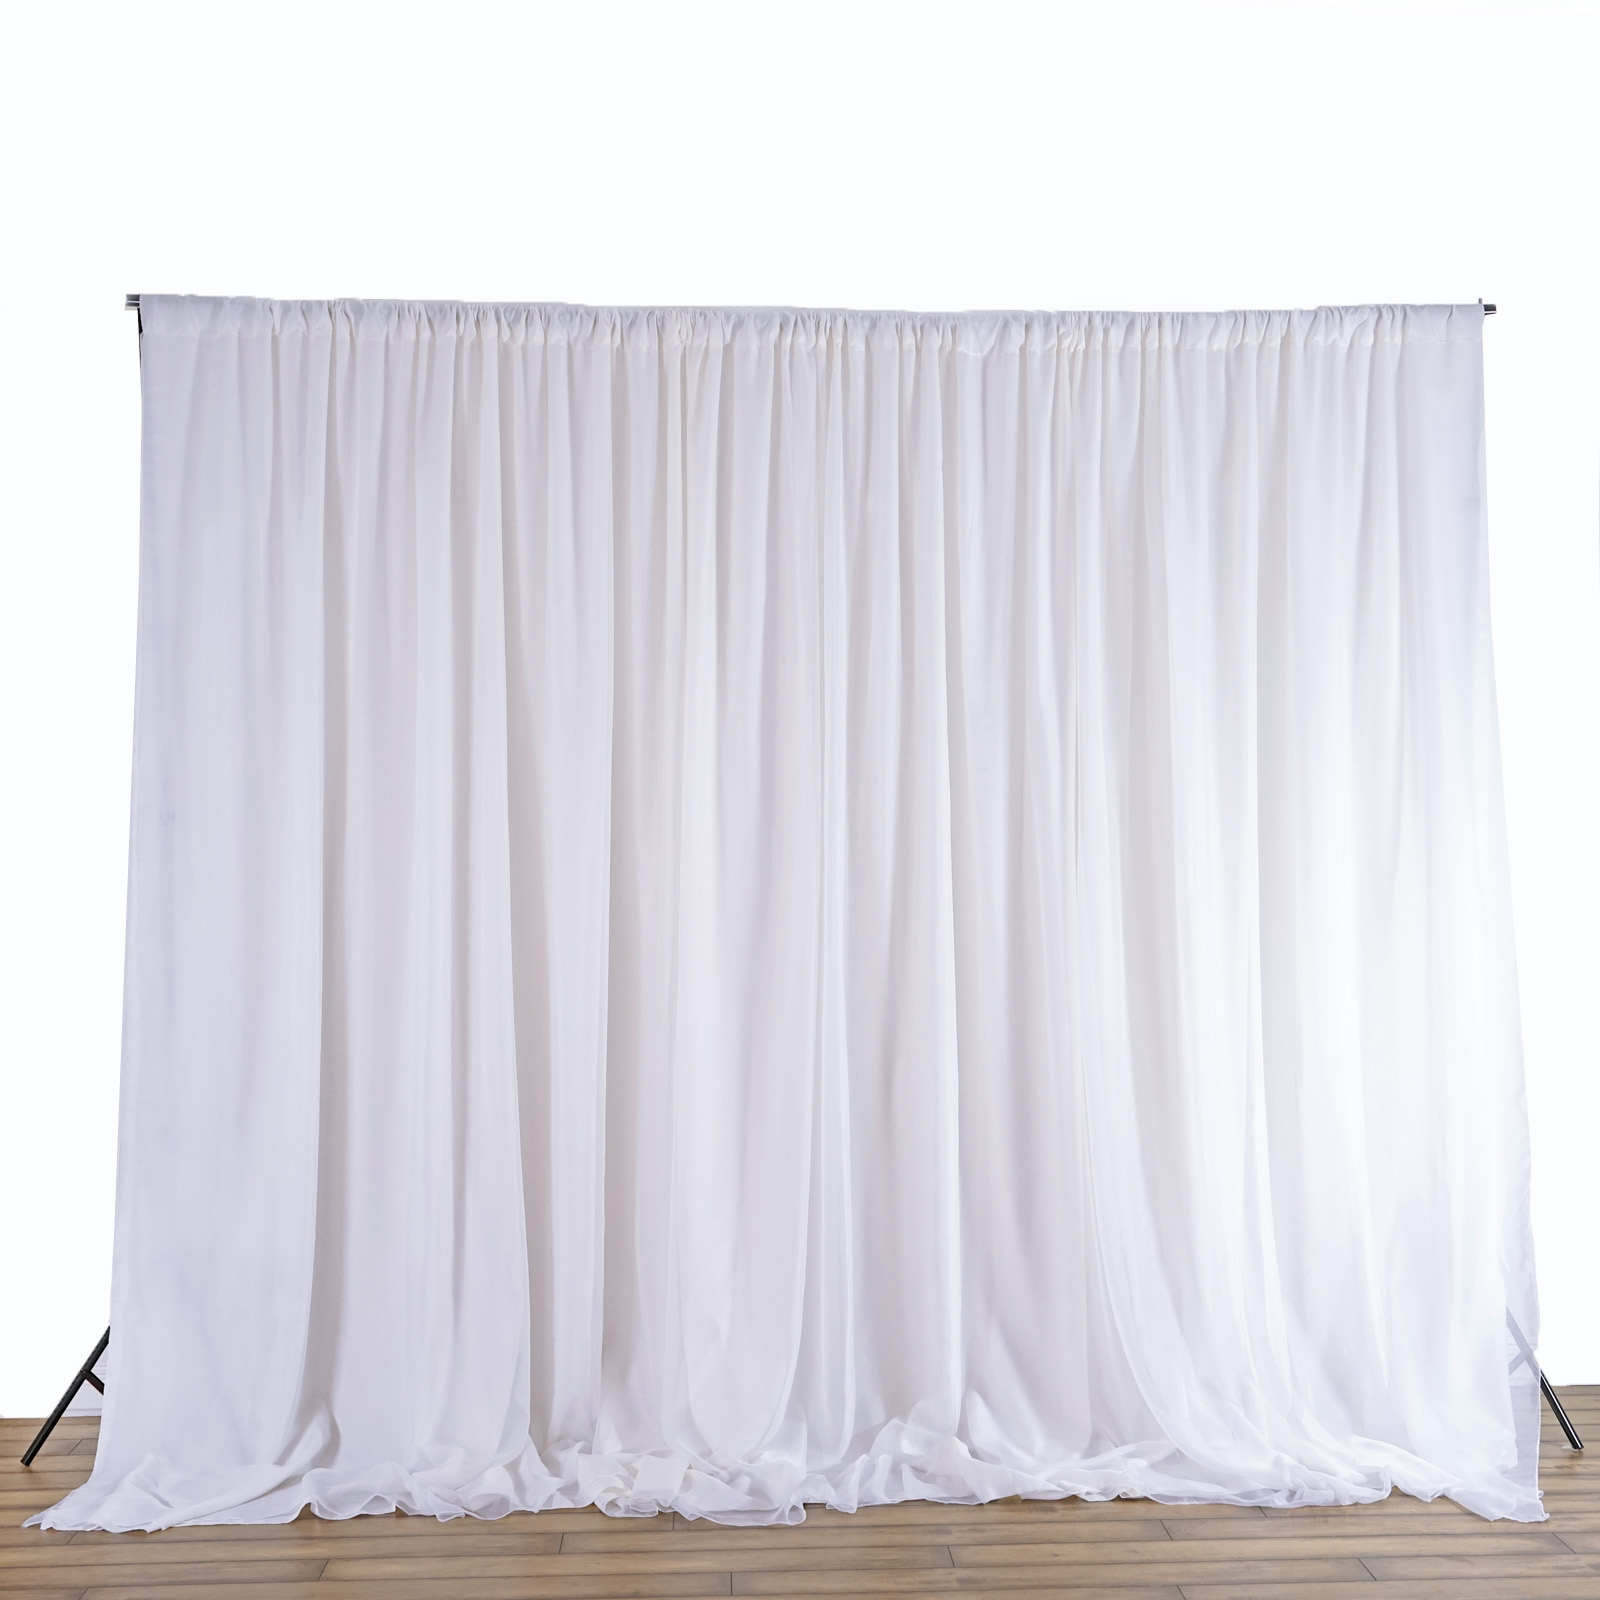 Wedding Altar History: 20 Ft X 8 Ft WHITE Fabric BACKDROP Wedding Altar Ceremony